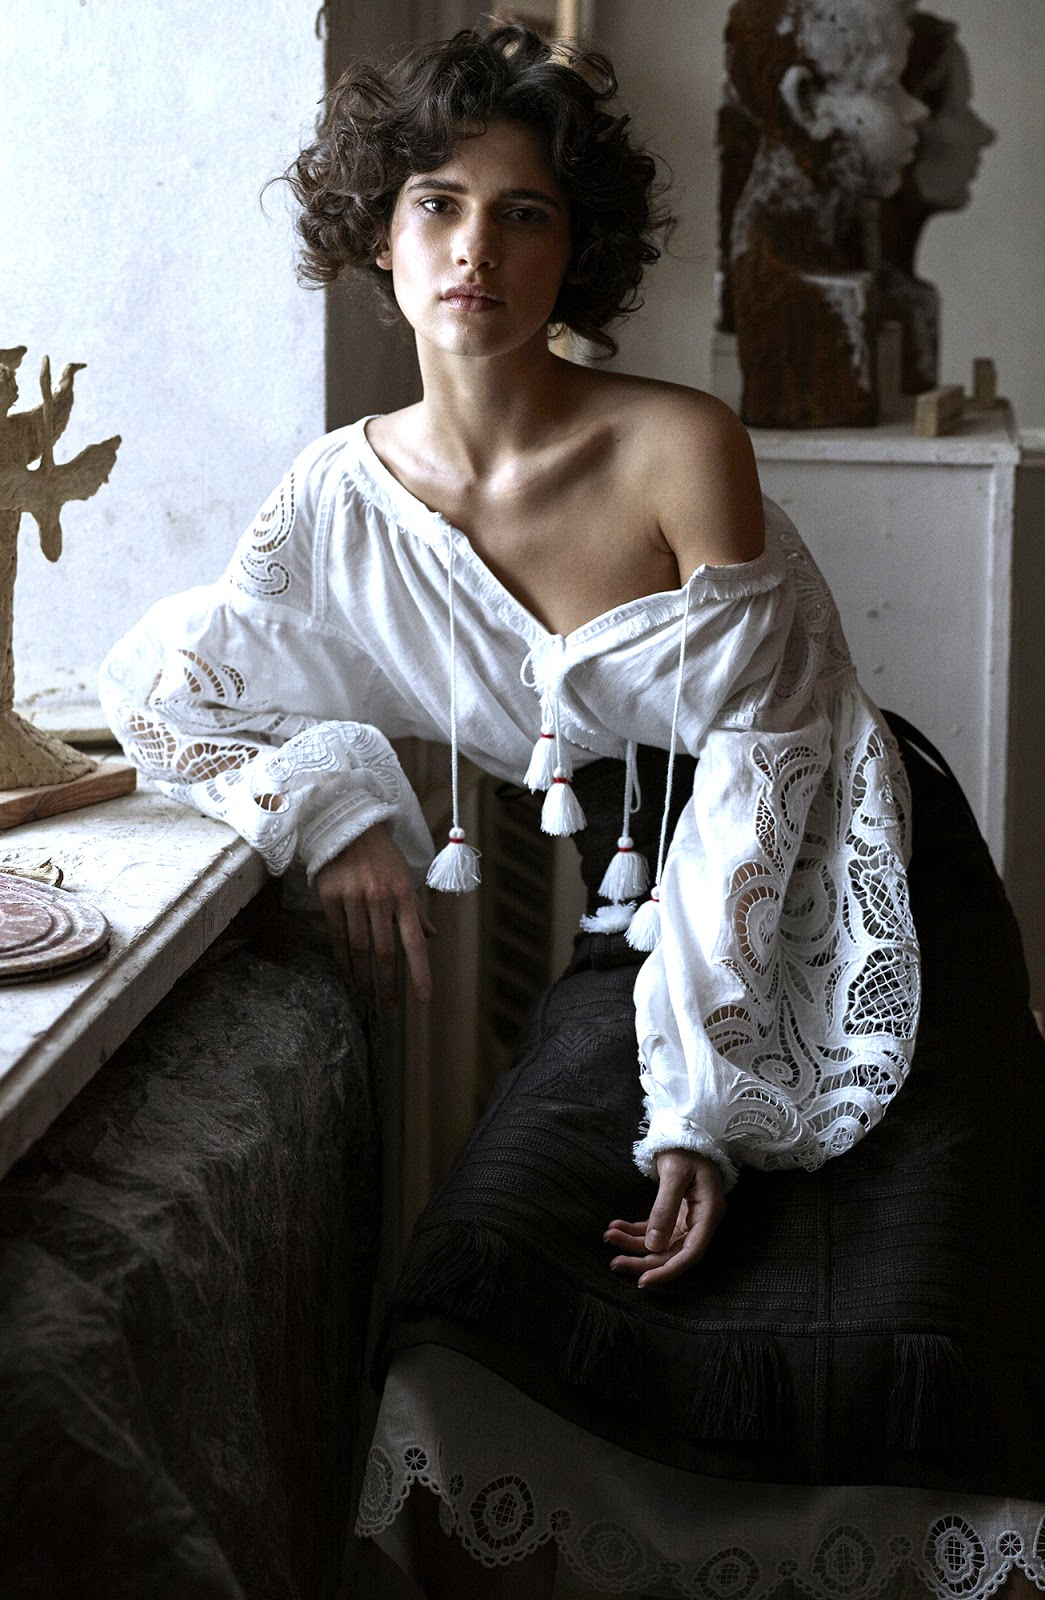 Peasant & gypsy blouse shopping list & inspiration / Iana Godnia in Vogue Ukraine March 2016 (photography: Phil Poynet, styling: Julie Pelipas) via www.fashionedbylove.co.uk